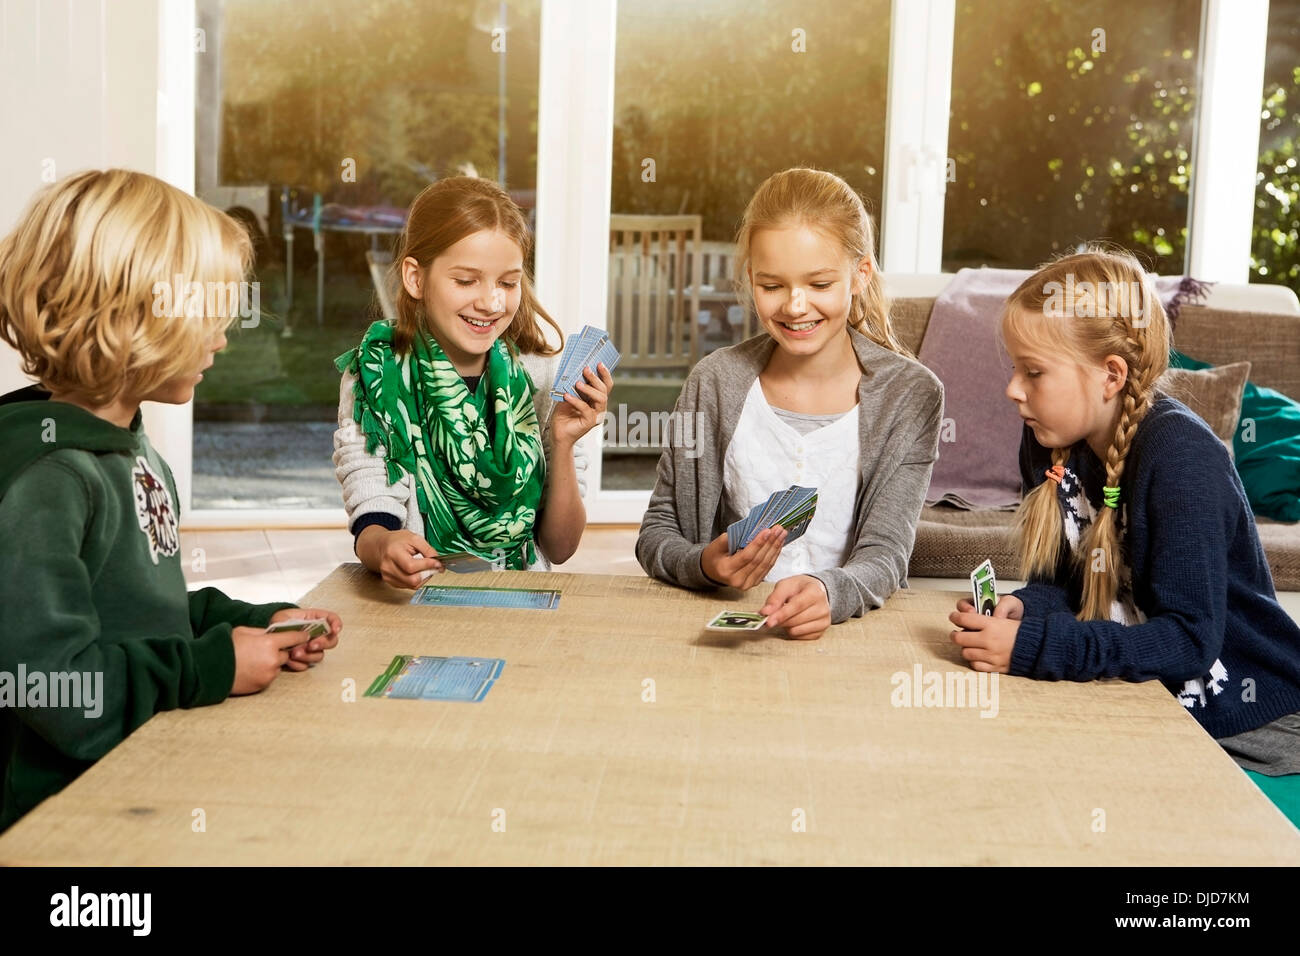 four children playing card game in living room stock photo 62986328 alamy. Black Bedroom Furniture Sets. Home Design Ideas